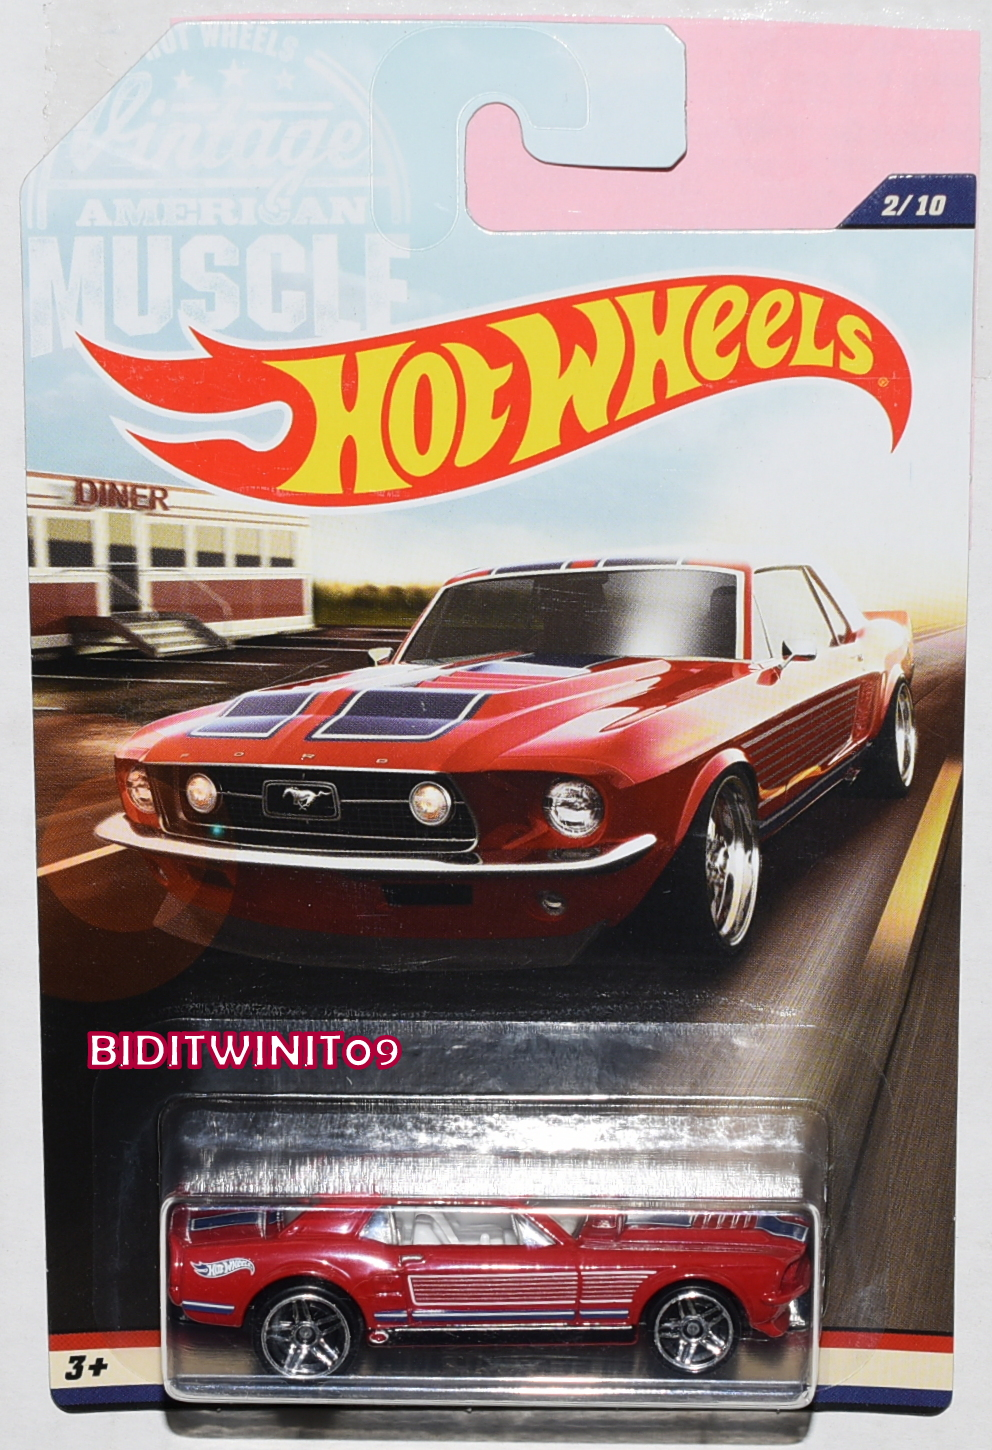 Hot wheels 2017 vintage american muscle 1967 ford mustang coupe 2 10